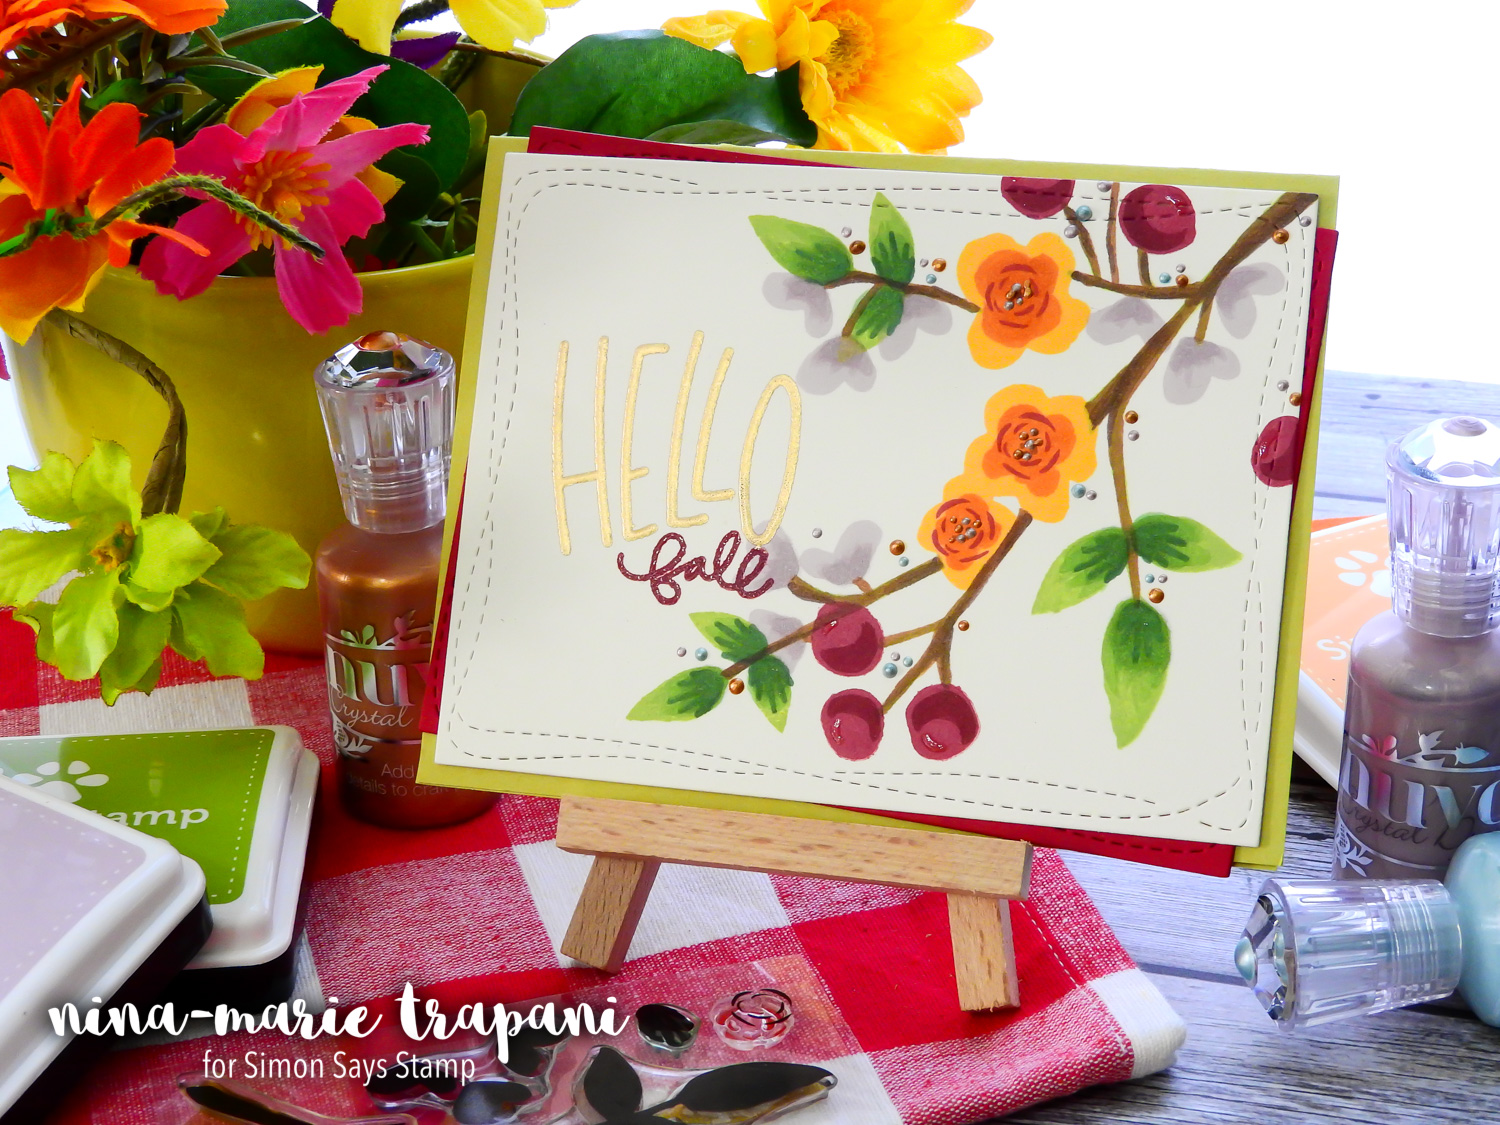 Studio Monday with Nina-Marie: Stretching Spring Stamps for a Fall Card | Nina-Marie Design